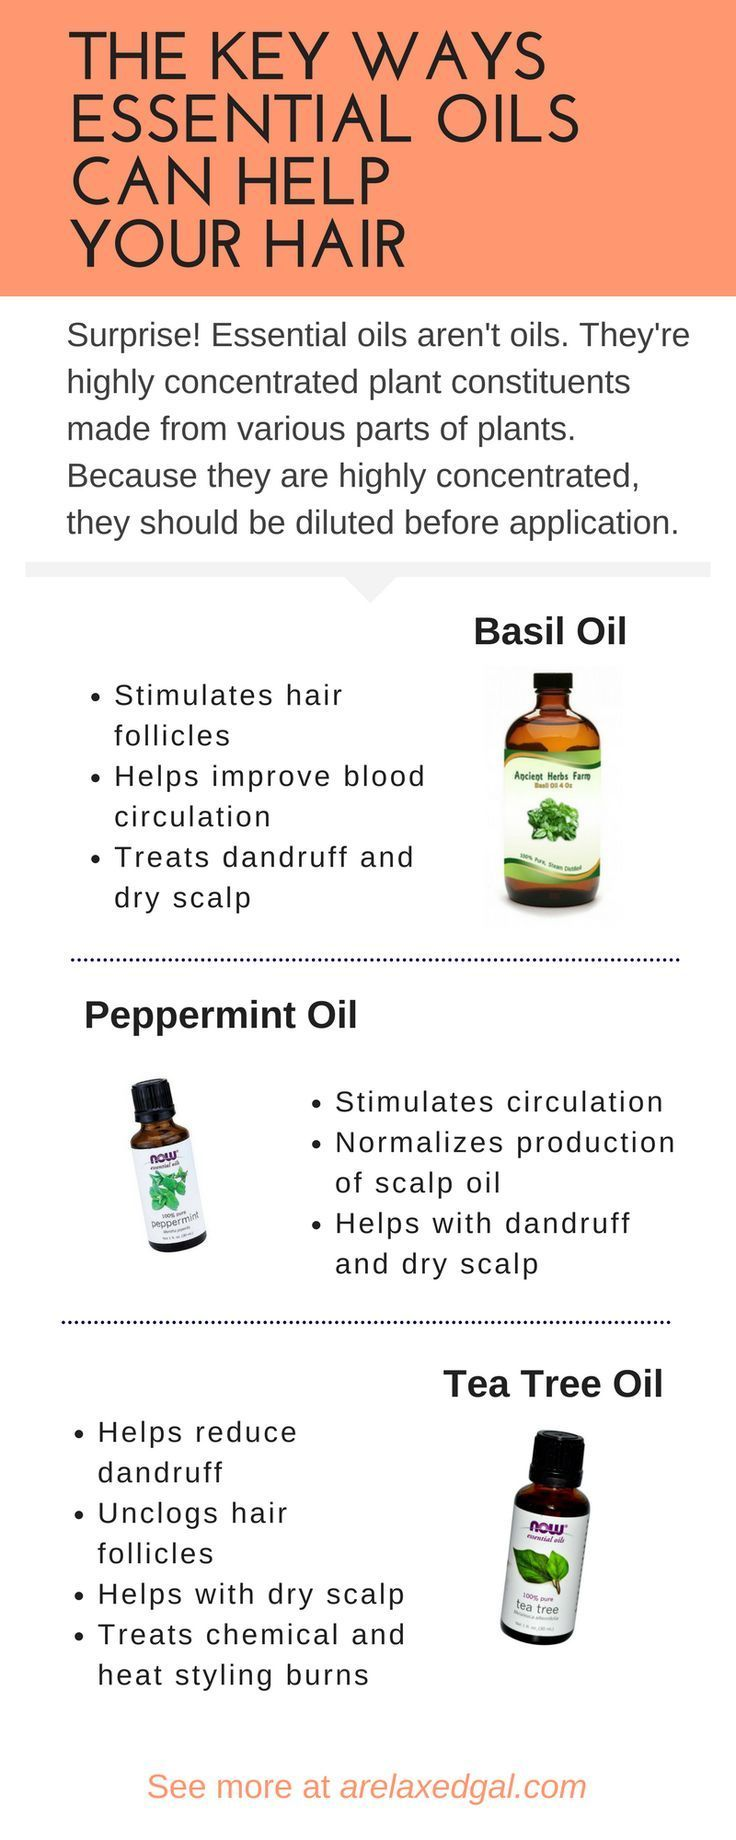 Infographic | essential oils | healthy hair care | why you should use essential oils on your hair | how to use essential oils on your hair | which essential oils are good for hair | @arelaxedgal #hairmaintenance #wavy #hair #maintenance